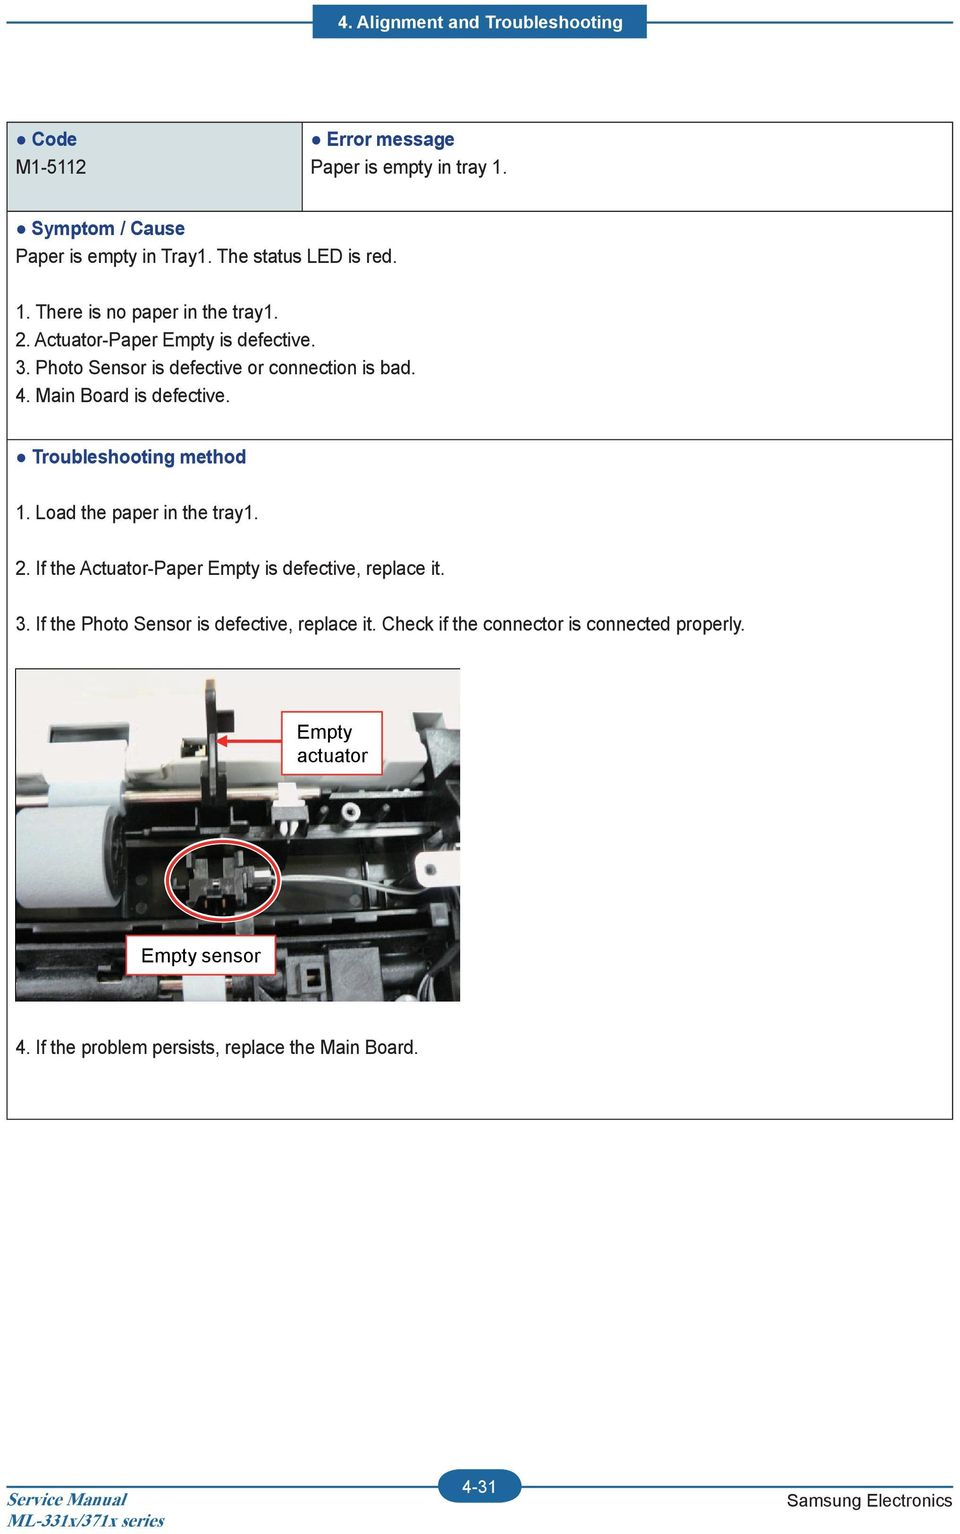 422 Error Message And Troubleshooting Pdf Hp Laserjet 1160 1320 Printer Service Manual Load The Paper In Tray1 2 If Actuator Empty Is